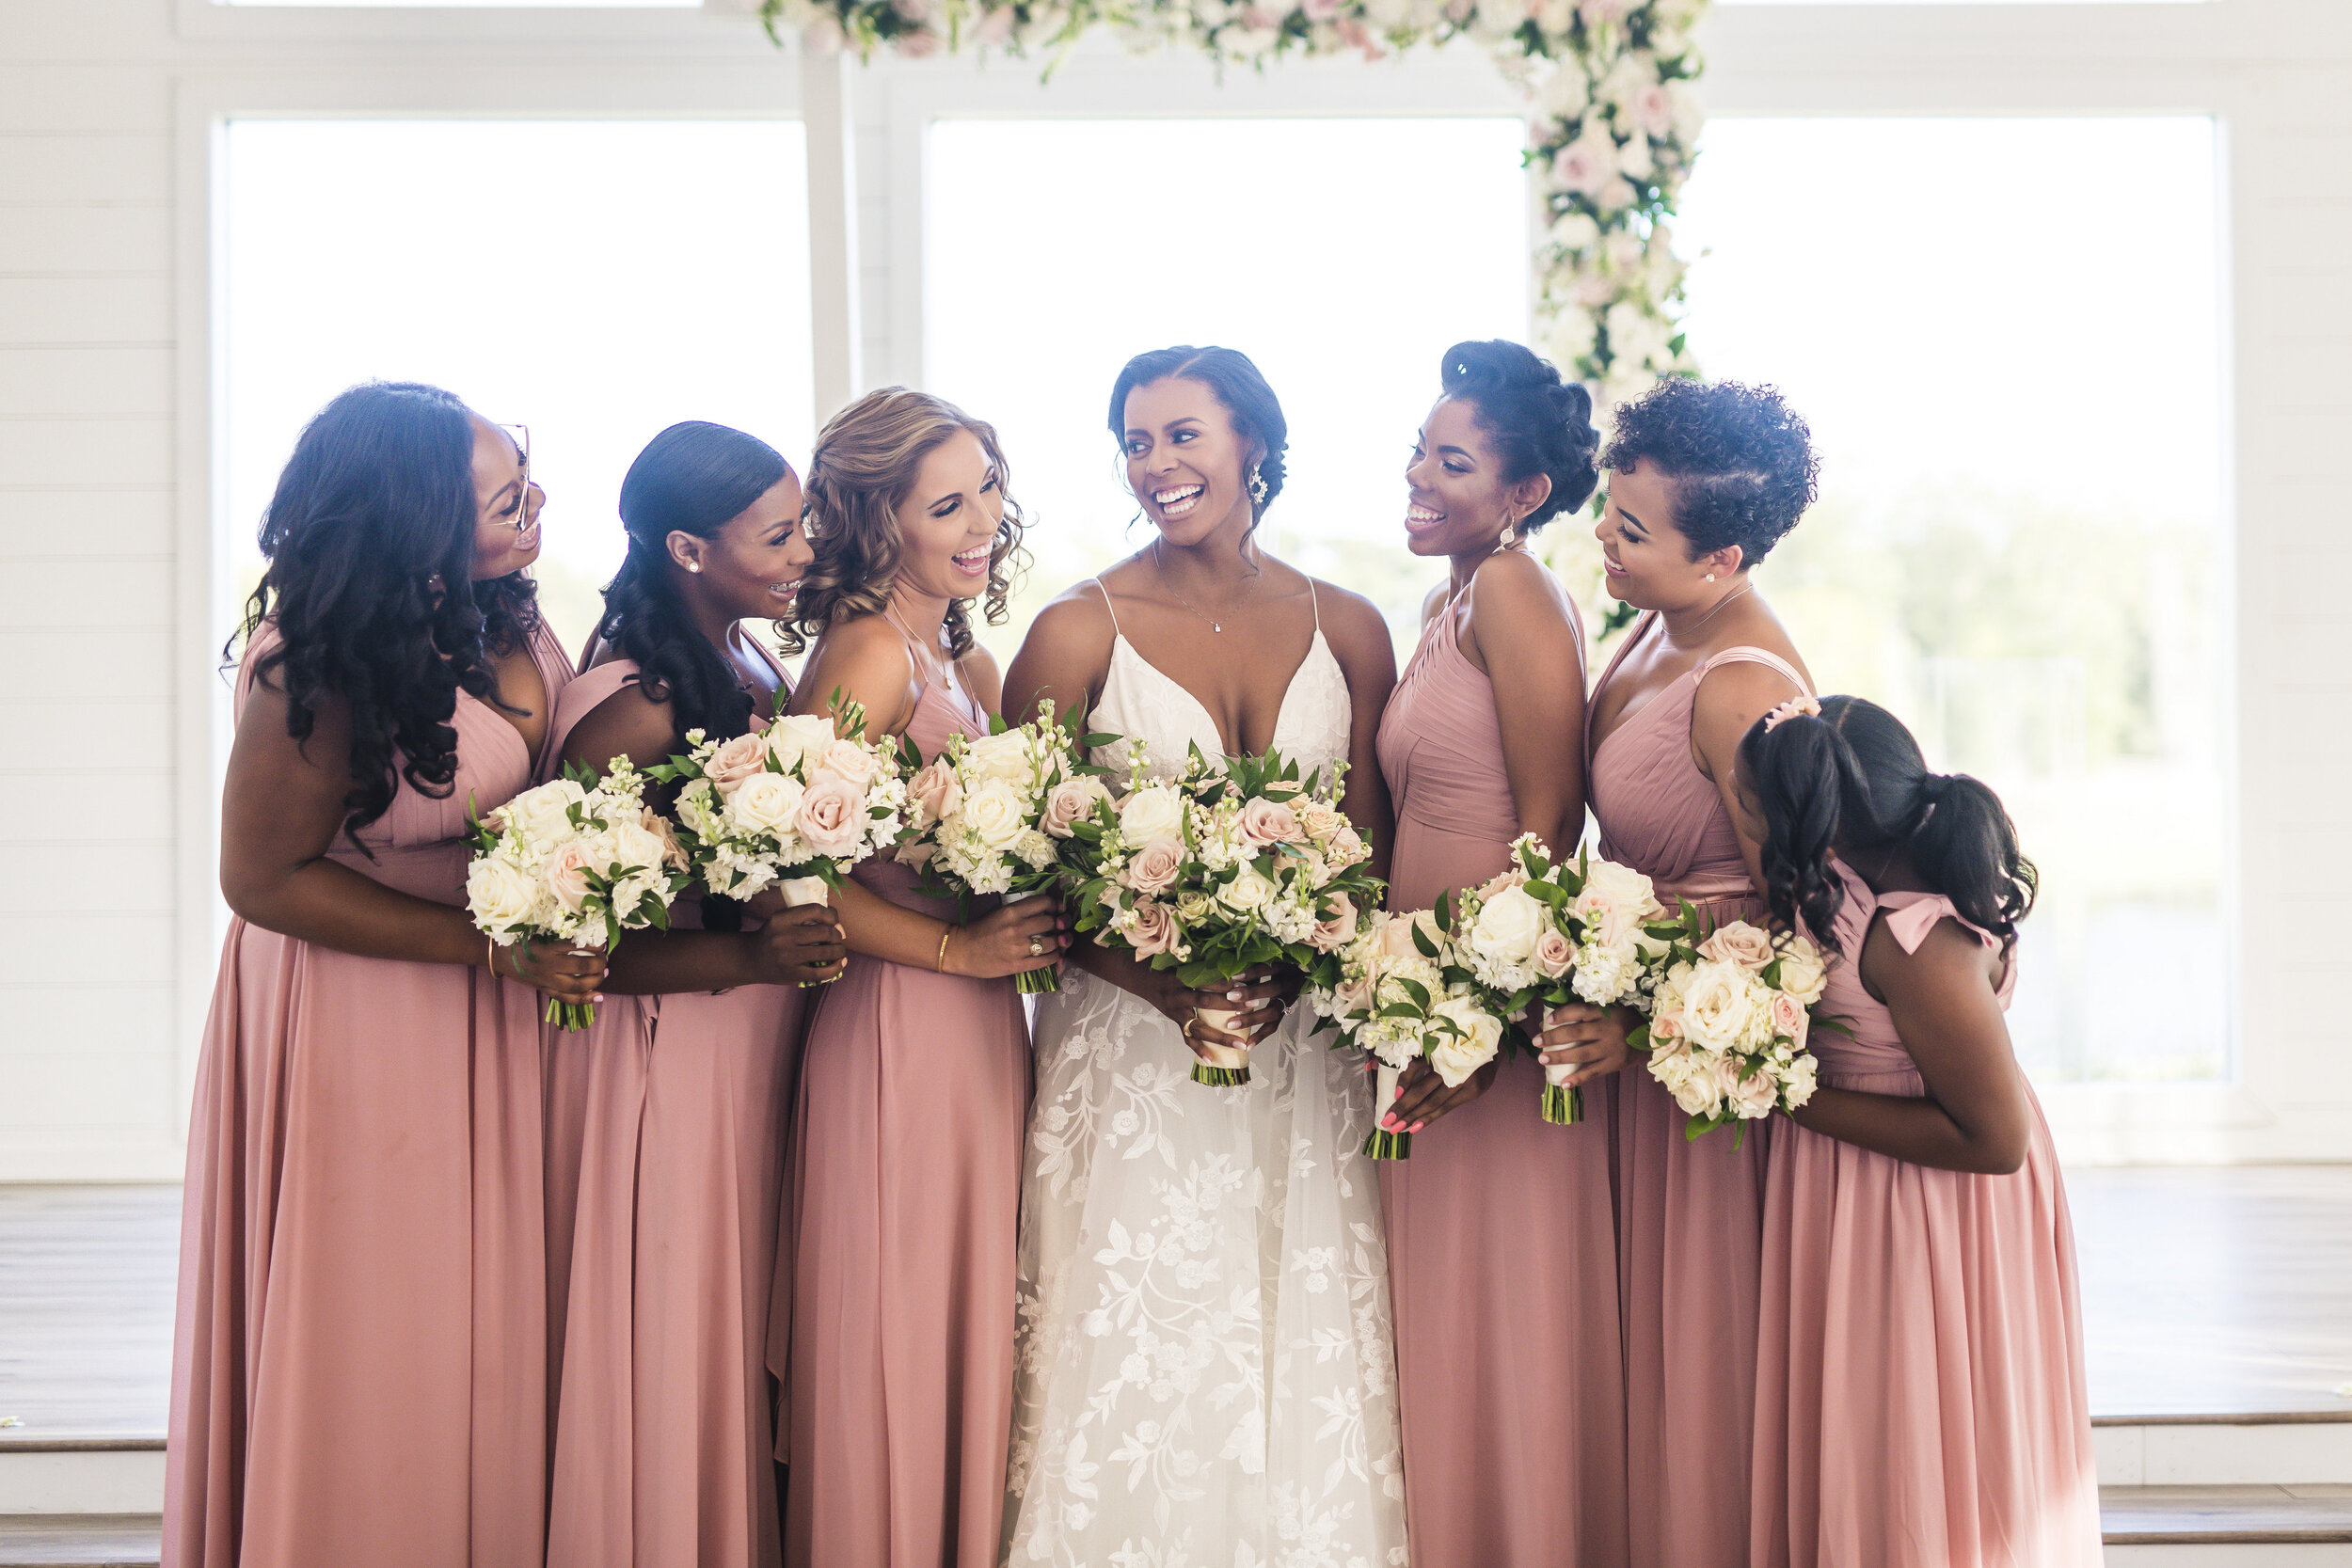 Dallas Wedding- Pharris Photography- Ceremony- Alexiss + Chaz- Bride and Bridesmaids